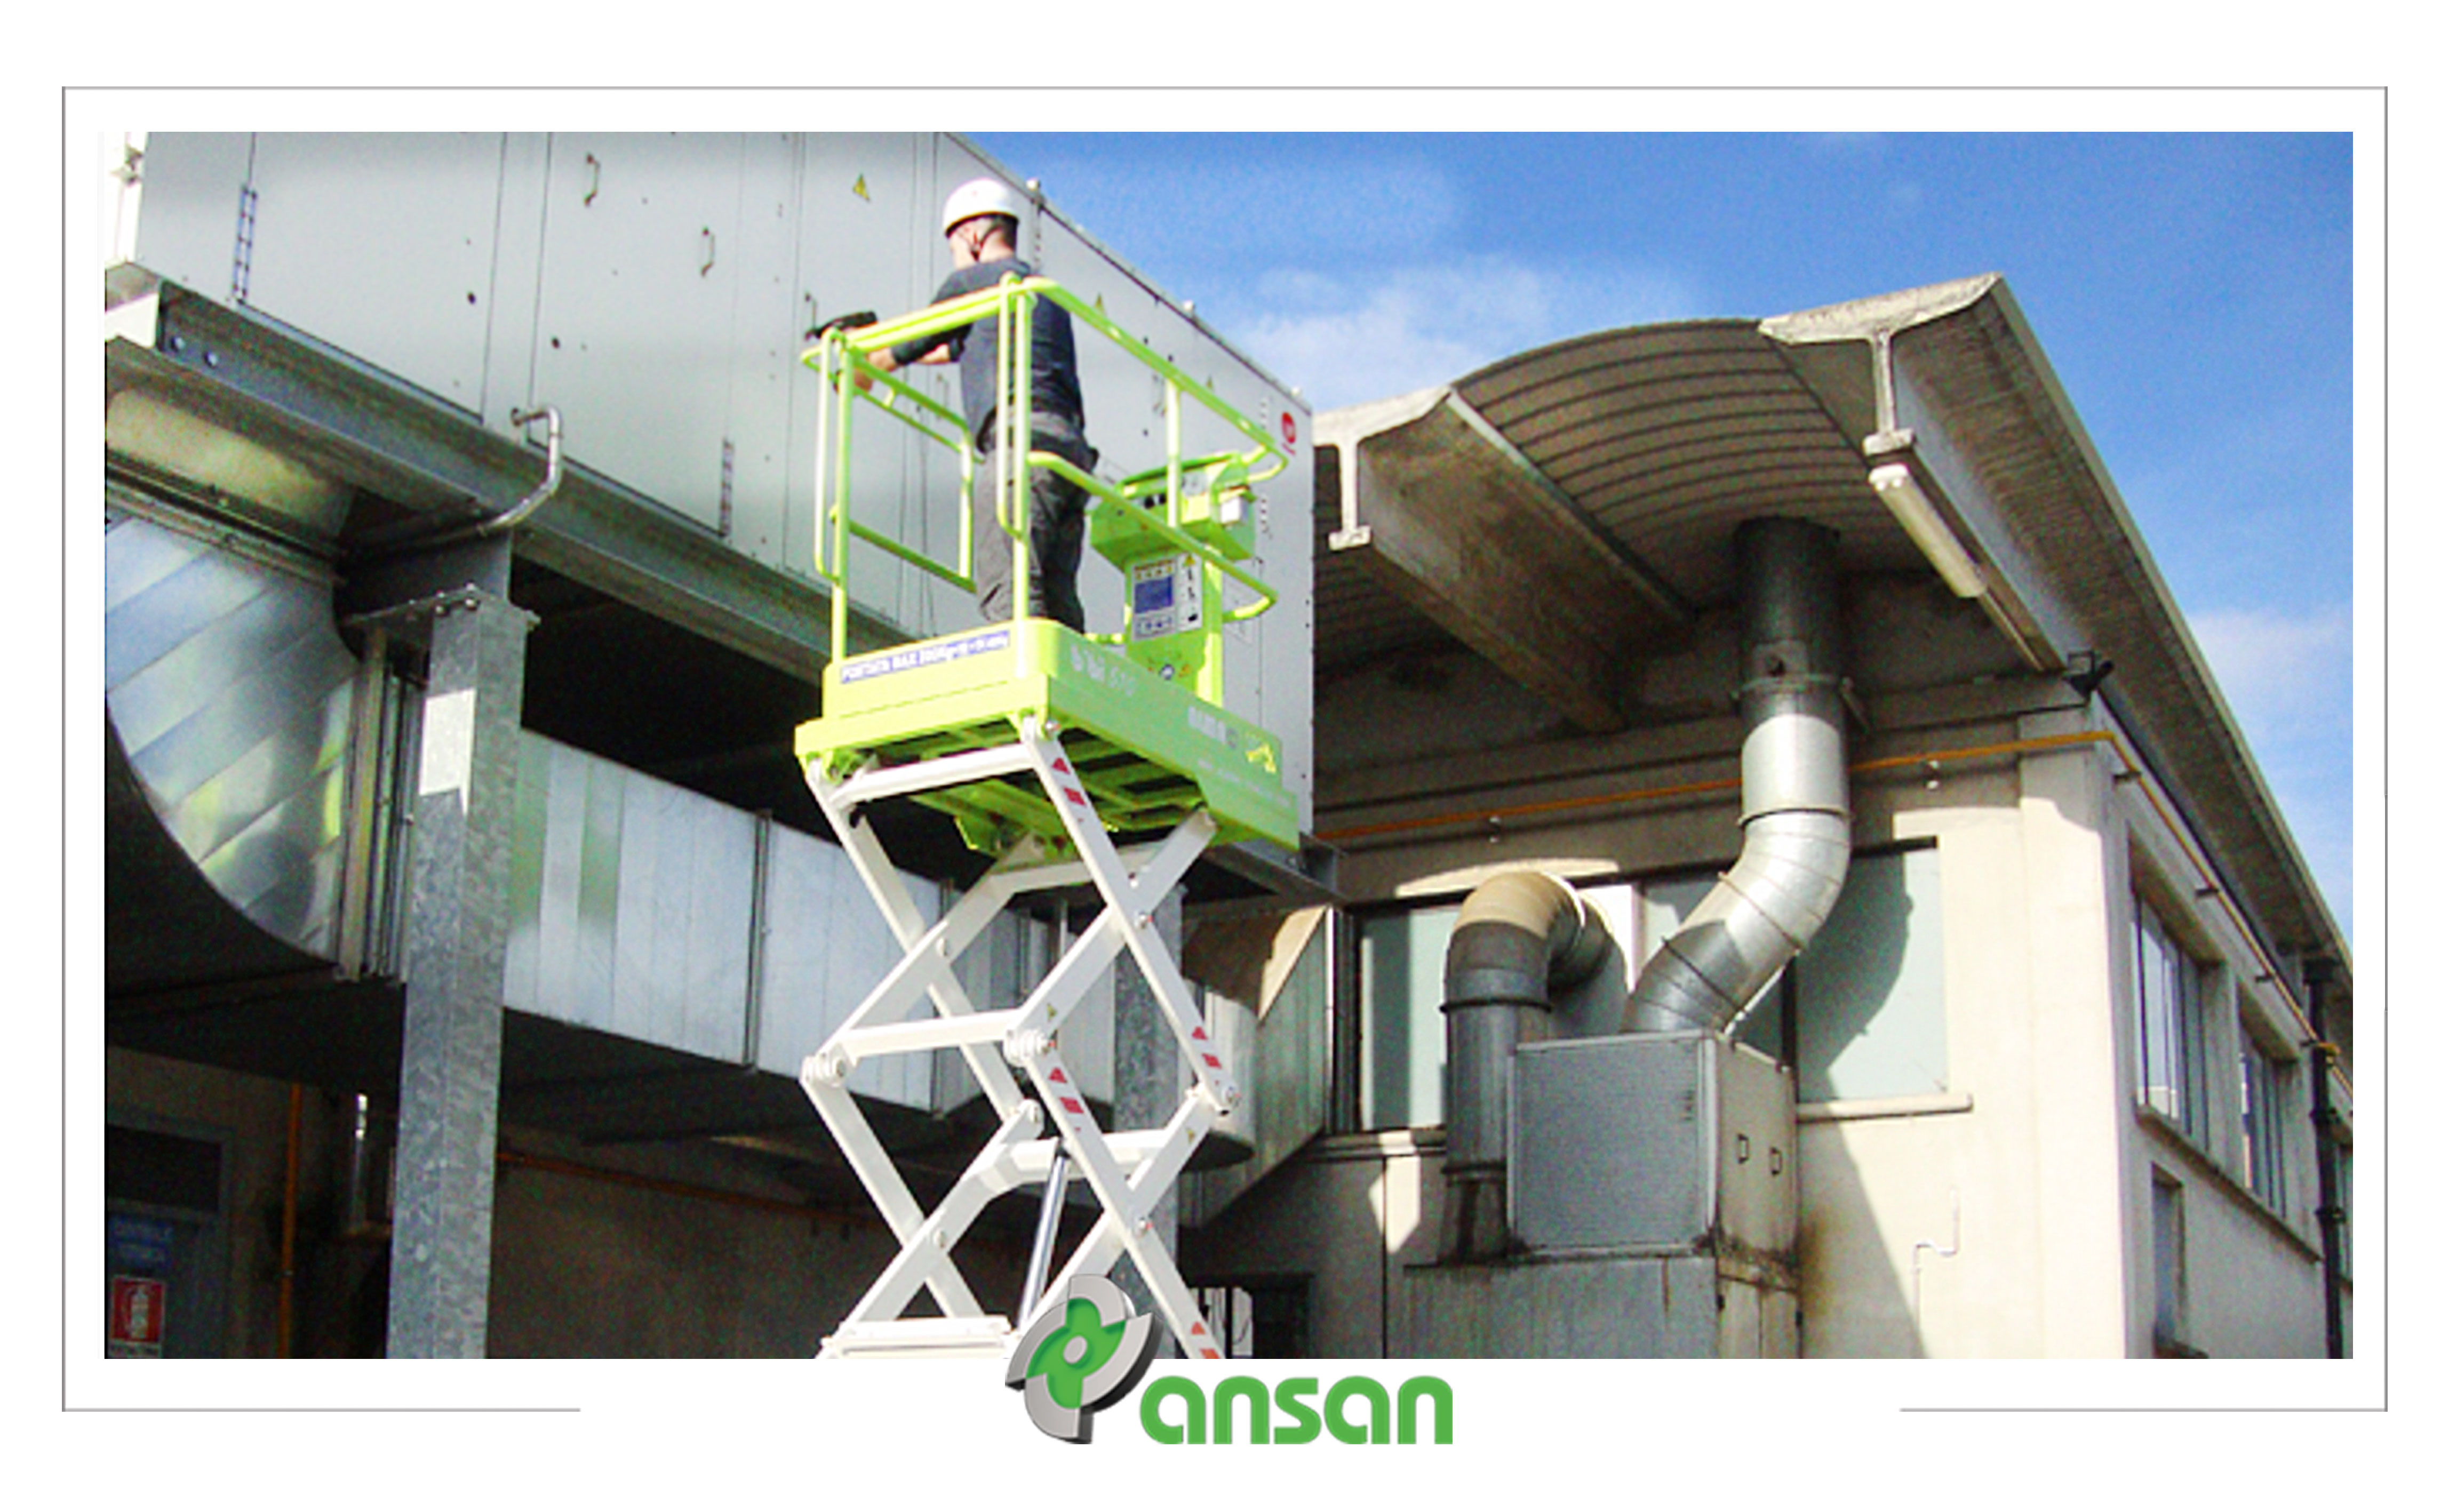 GIANT COOPERATION FROM ANSAN